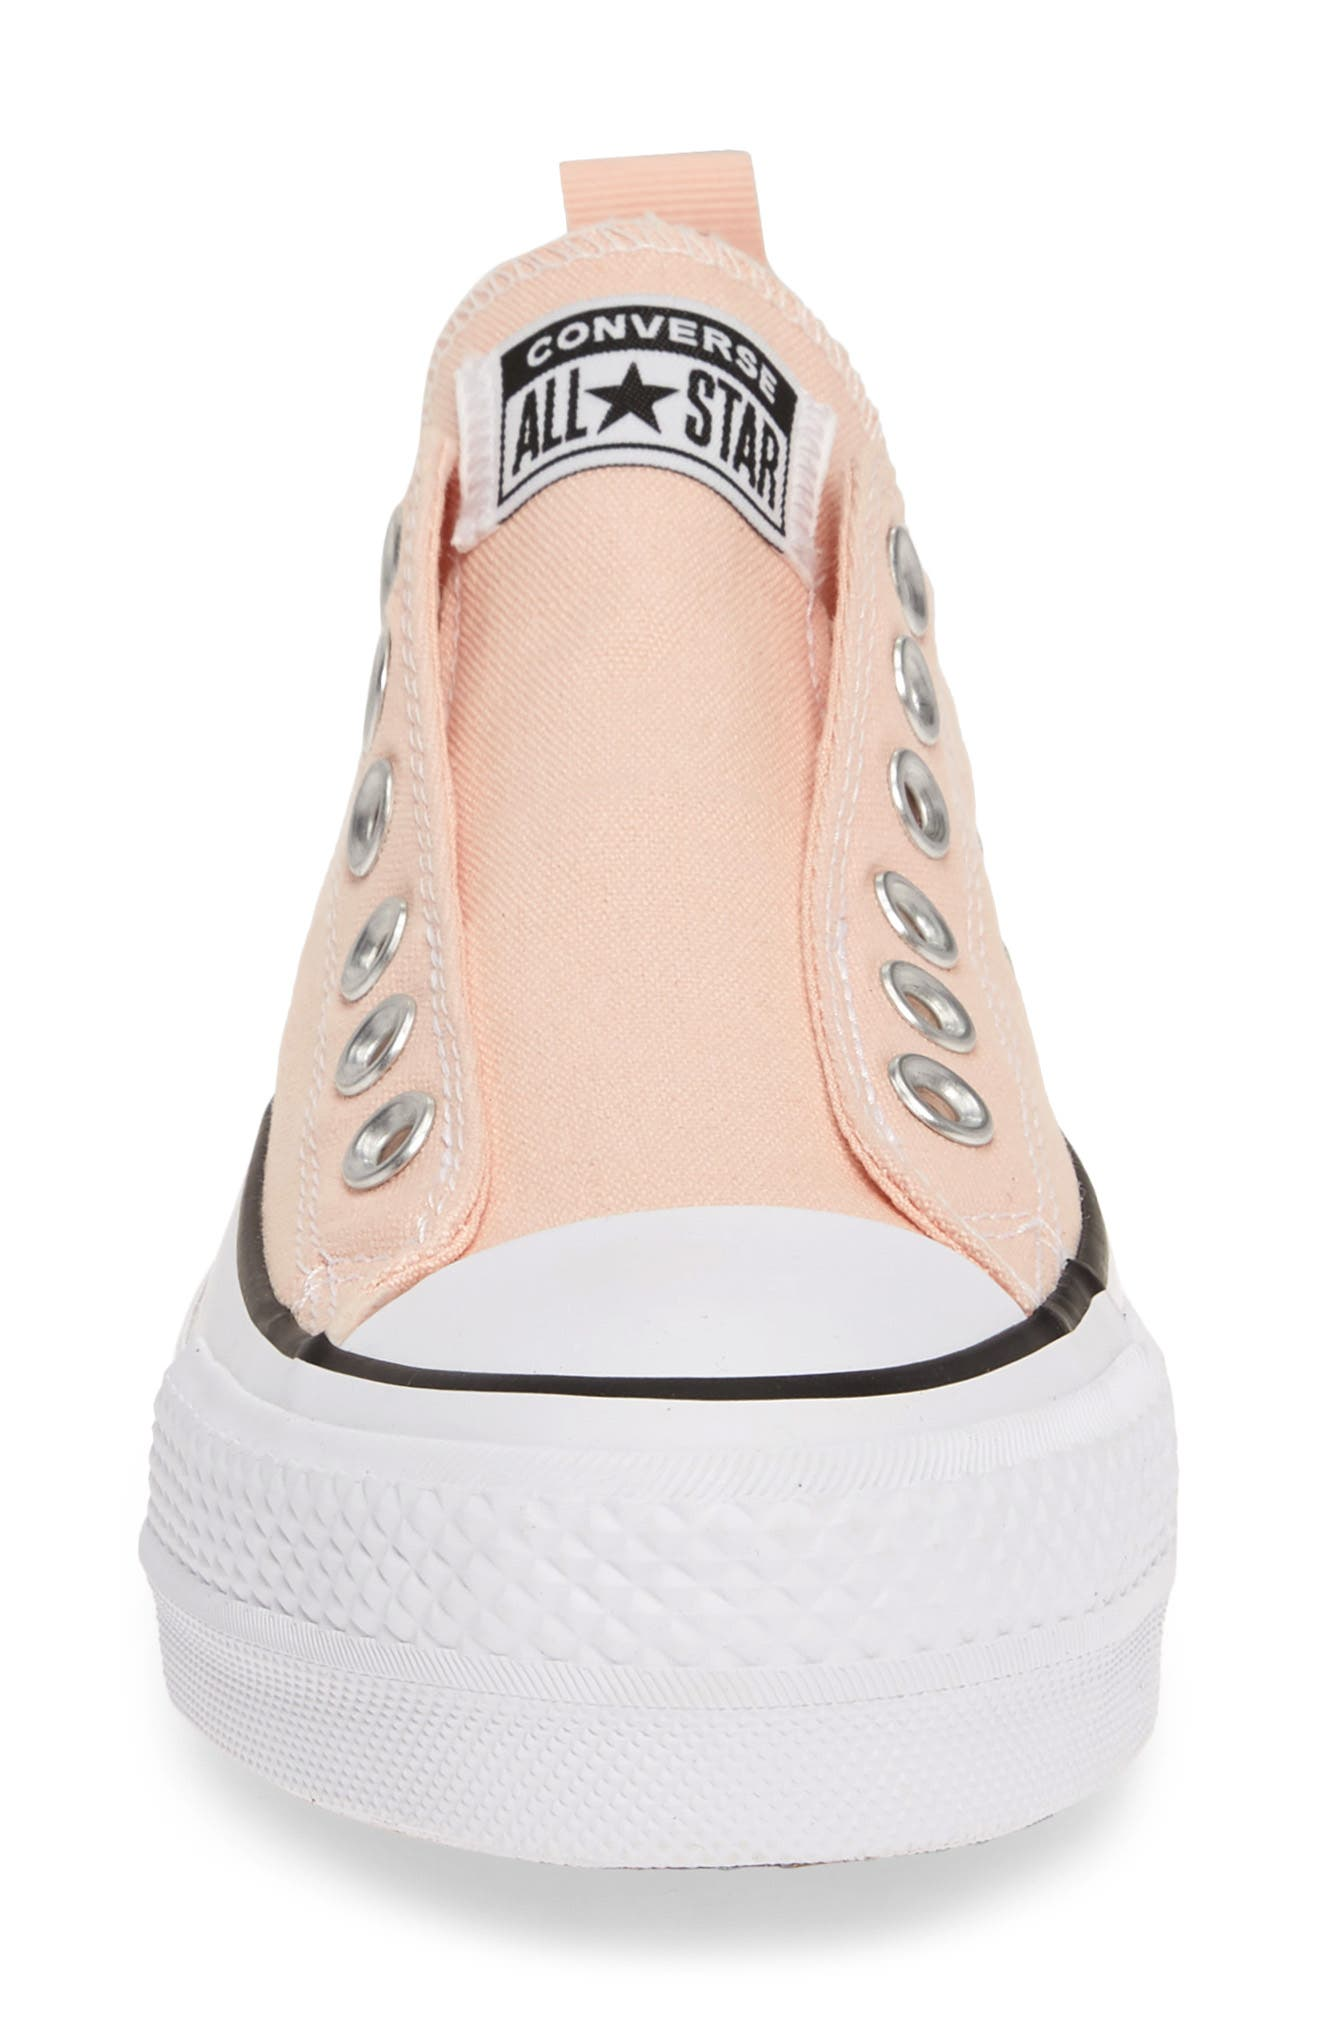 CONVERSE, Chuck Taylor<sup>®</sup> All Star<sup>®</sup> Lift Slip-On Sneaker, Alternate thumbnail 4, color, WASHED CORAL/ WHITE/ BLACK